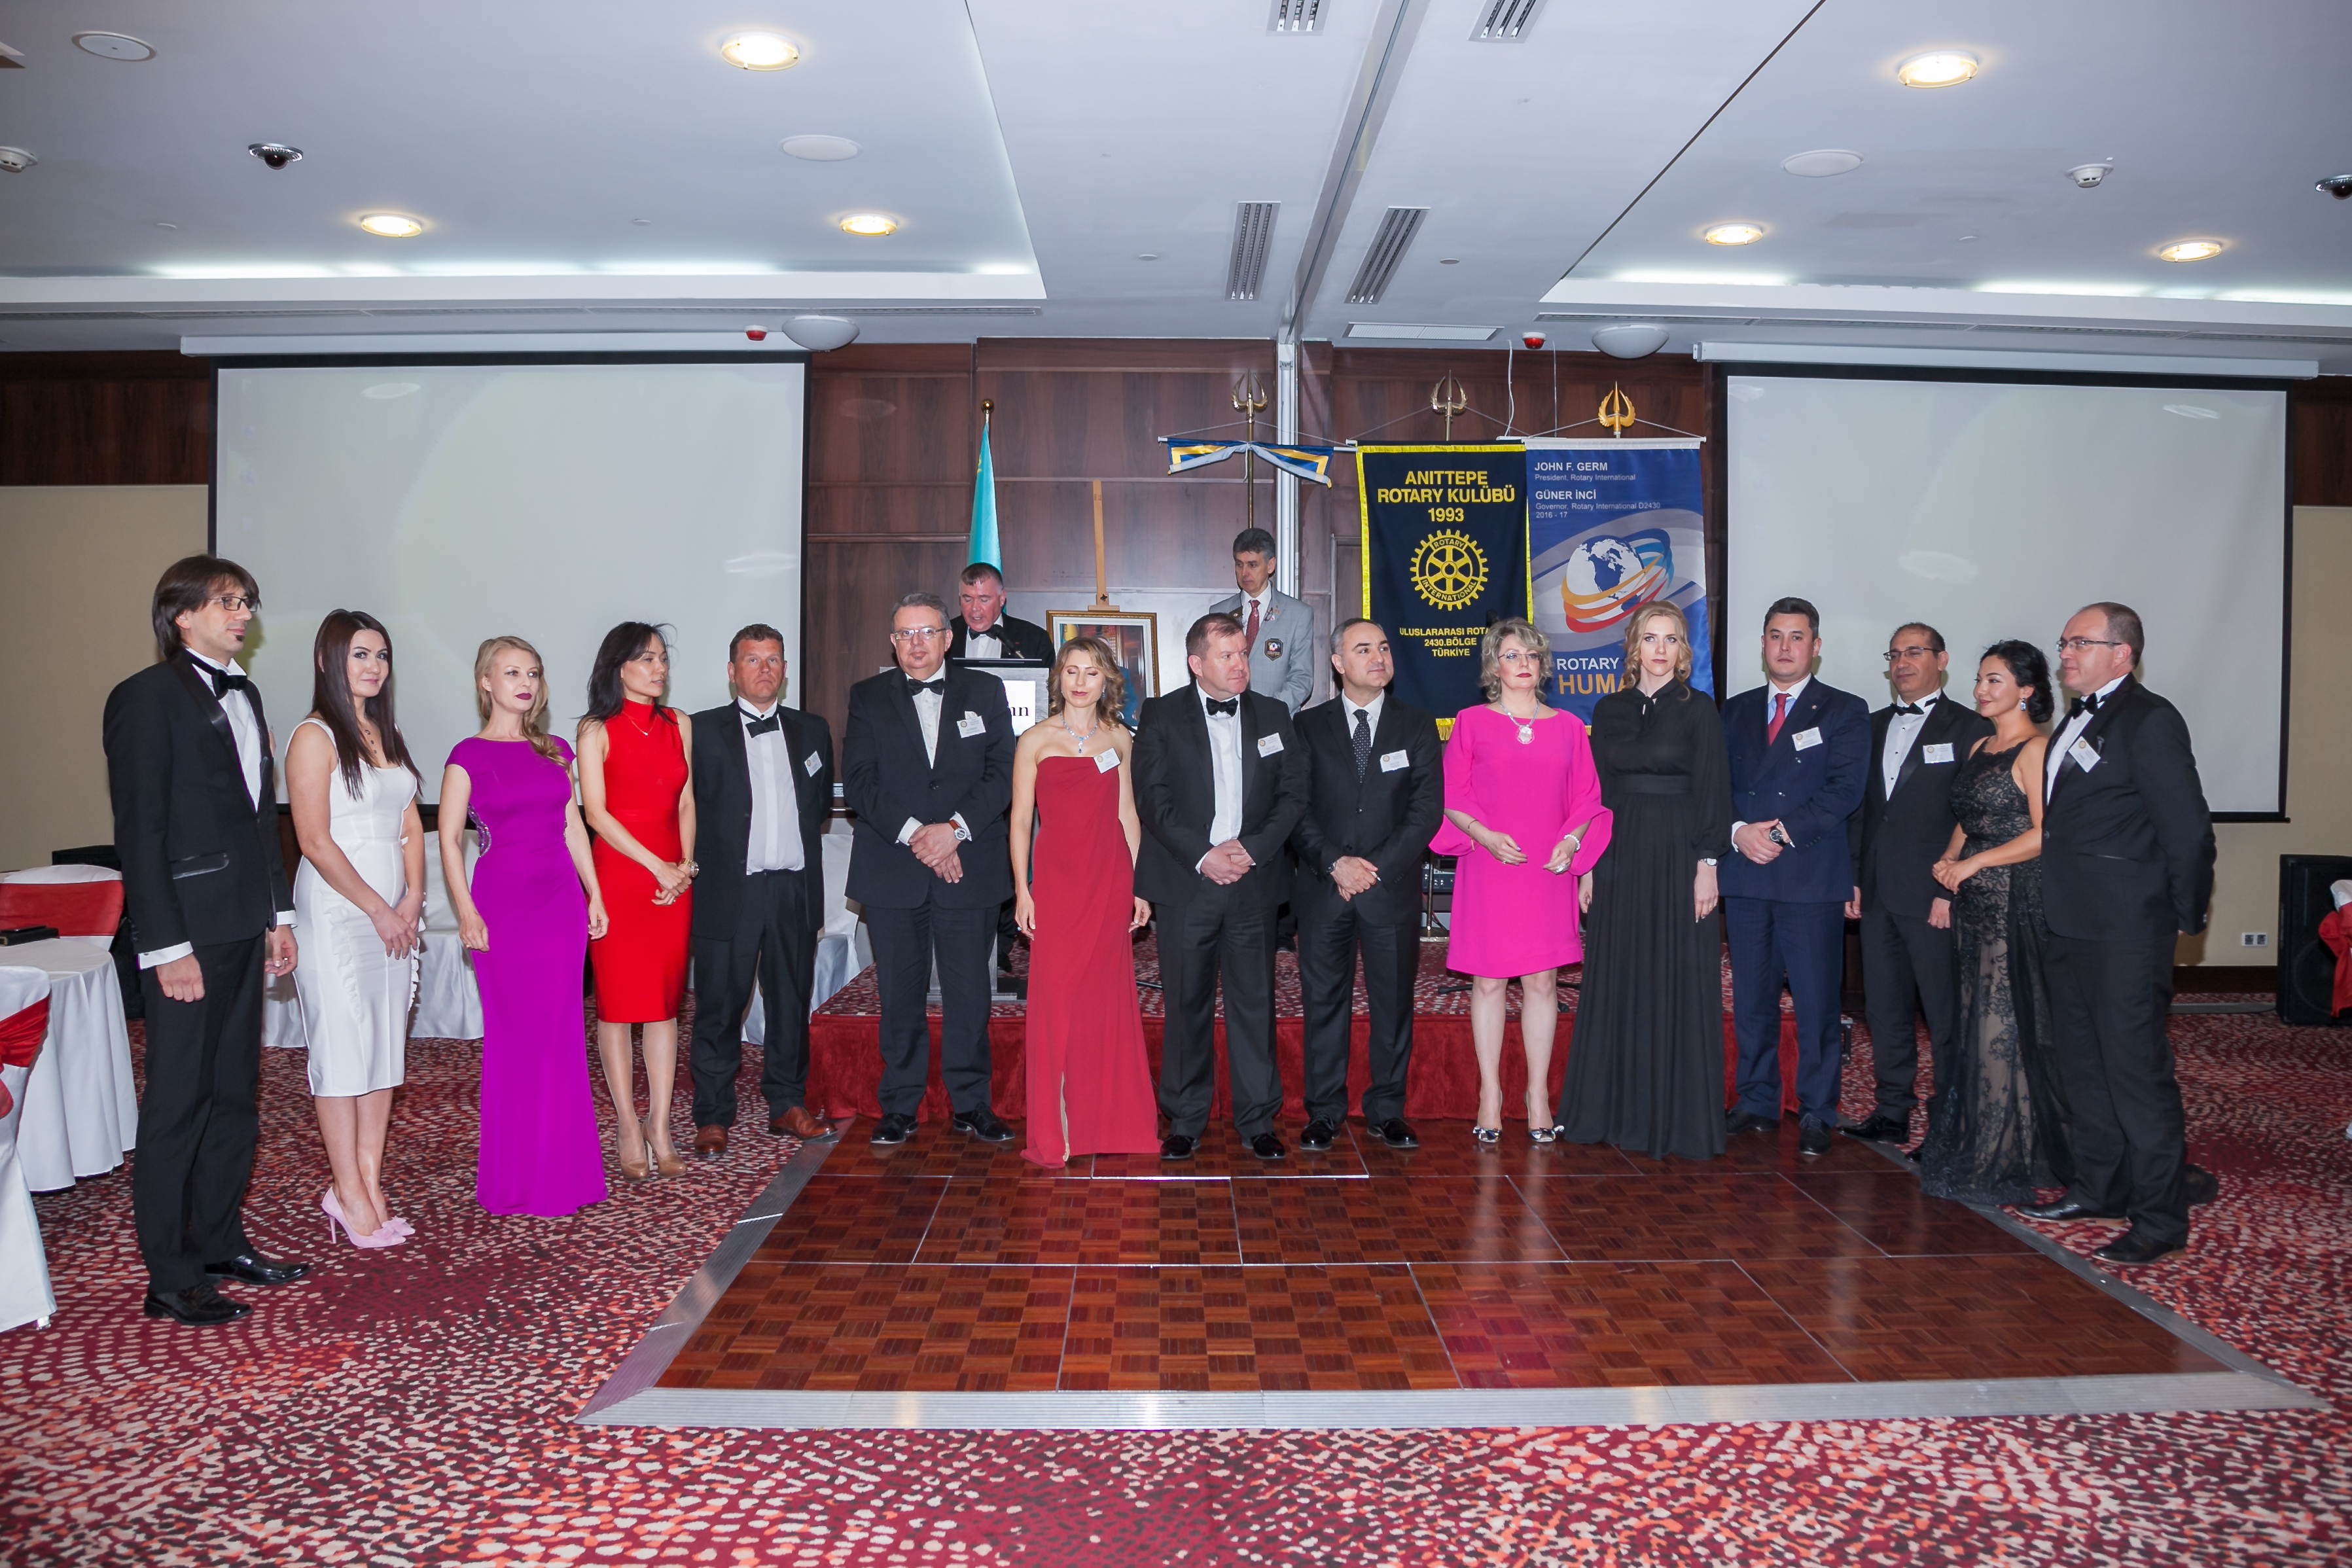 International Rotary Club launches in capital